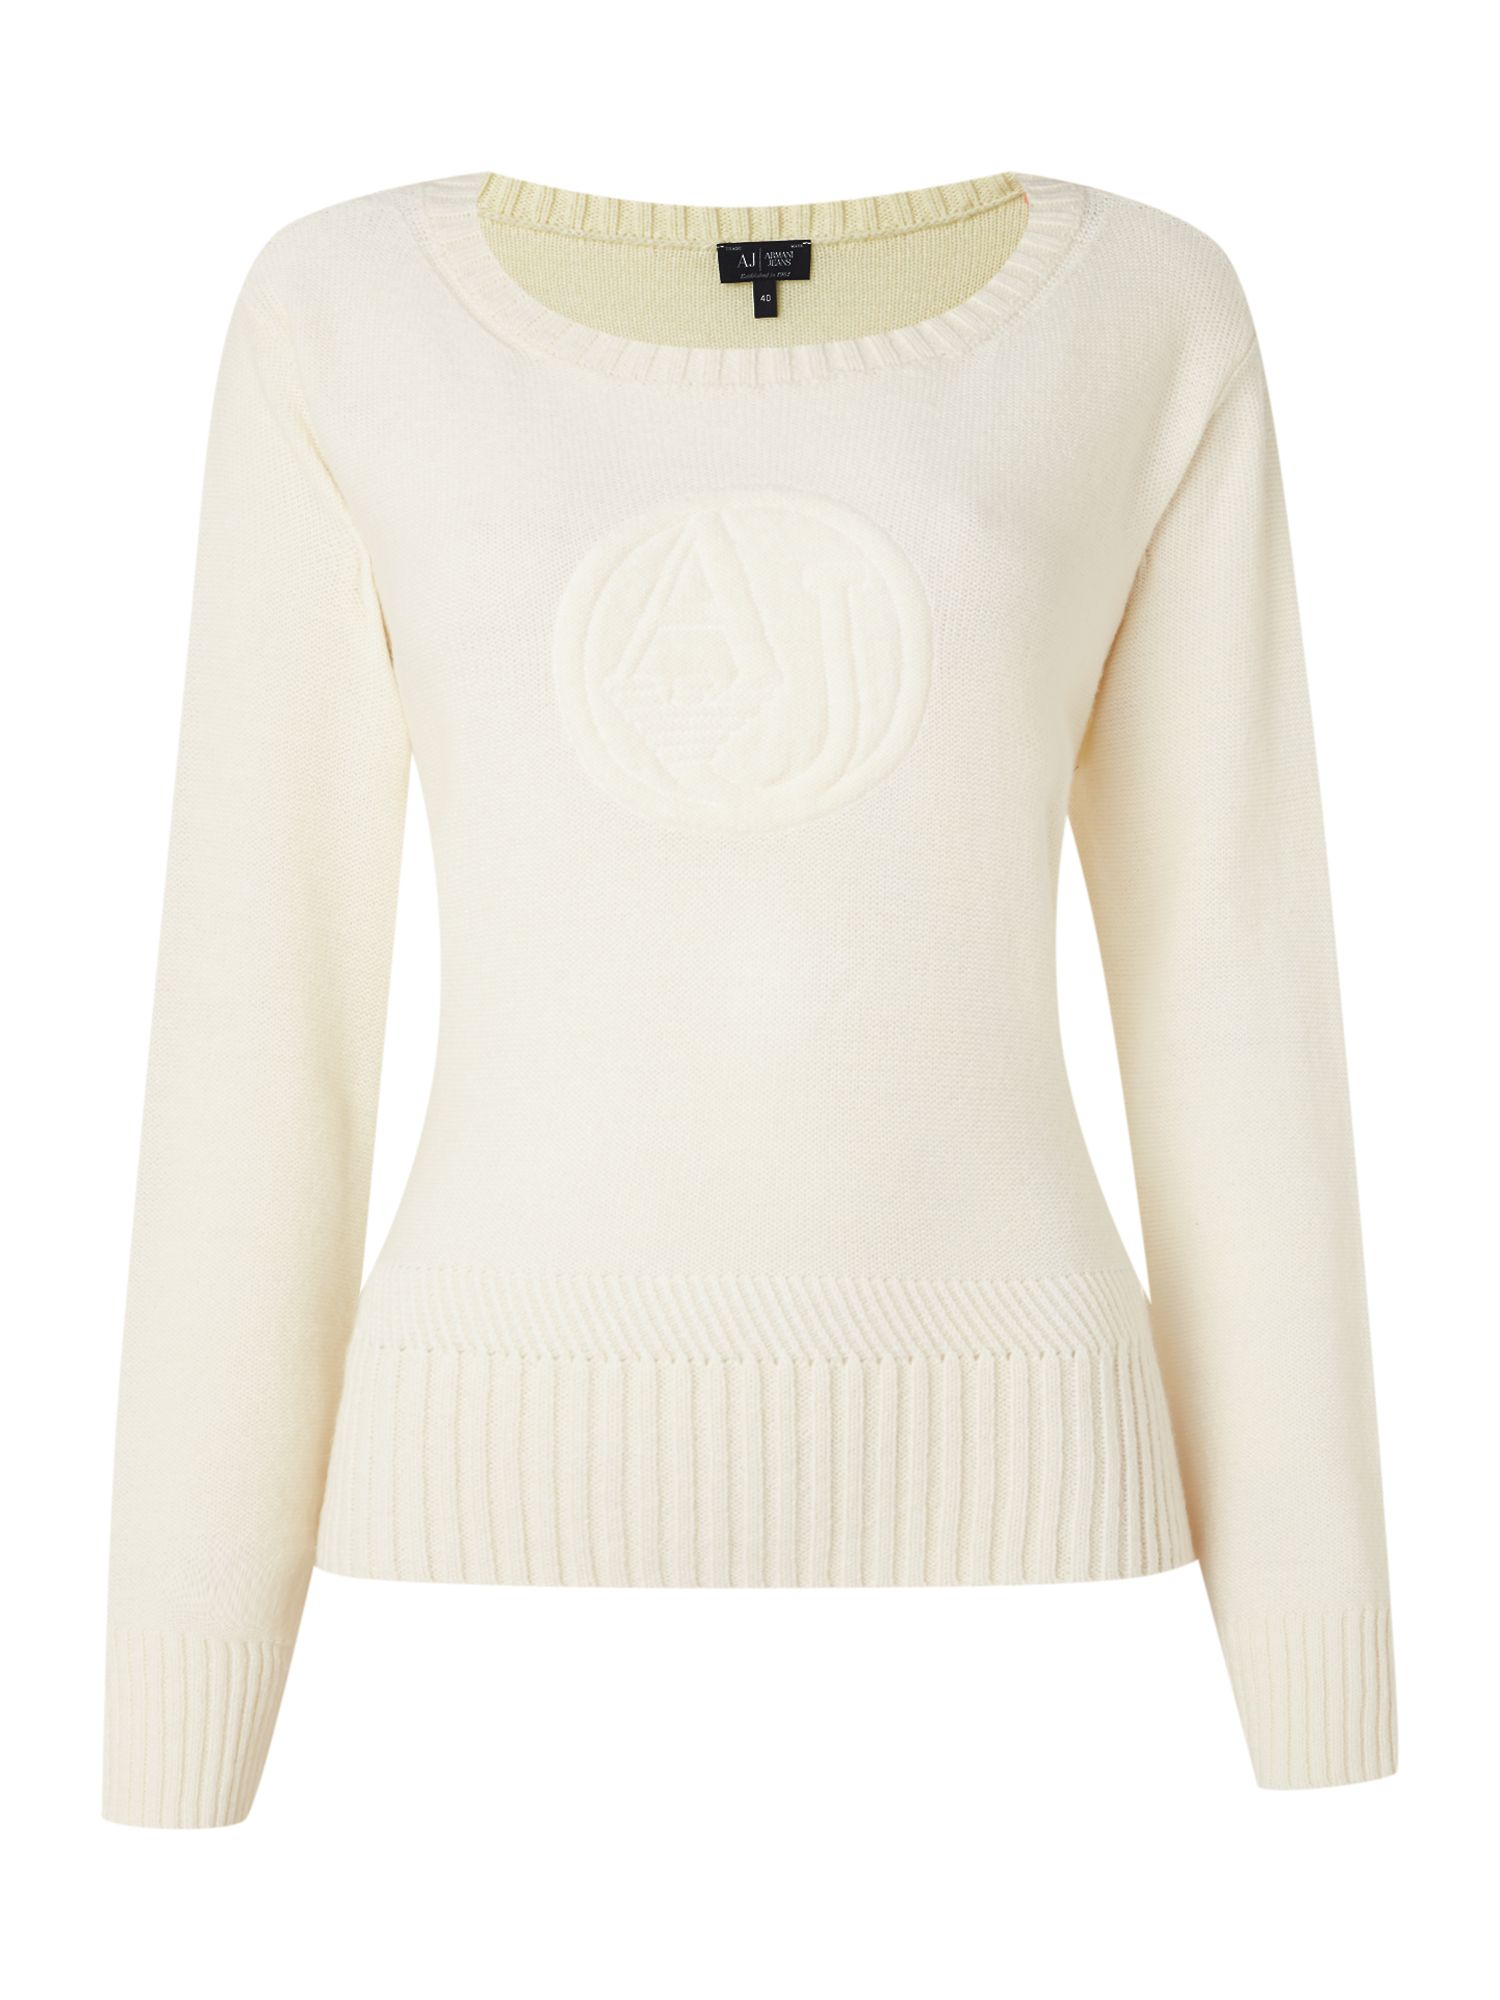 Long sleeve knit with heavy embossed logo